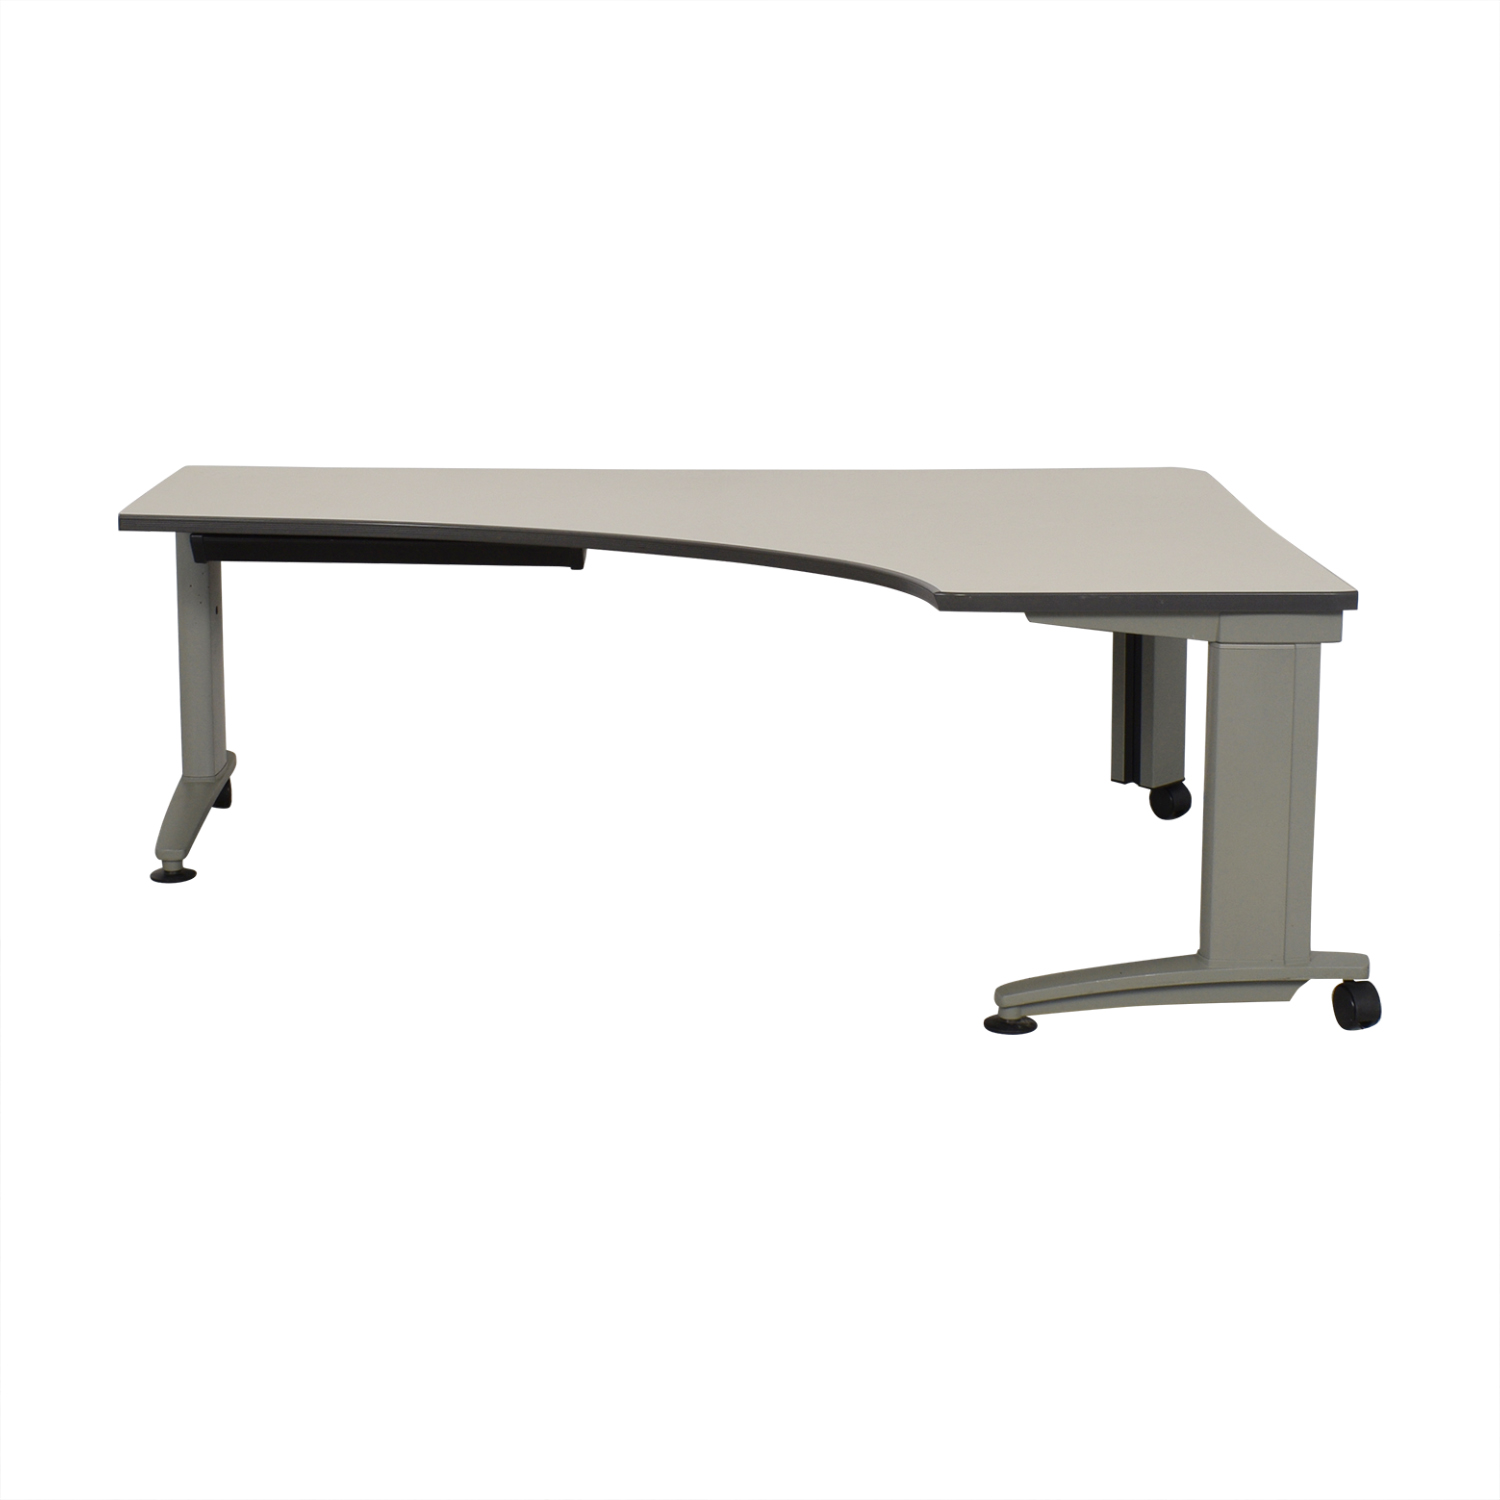 Knoll Currents Table Corner Desk / Home Office Desks